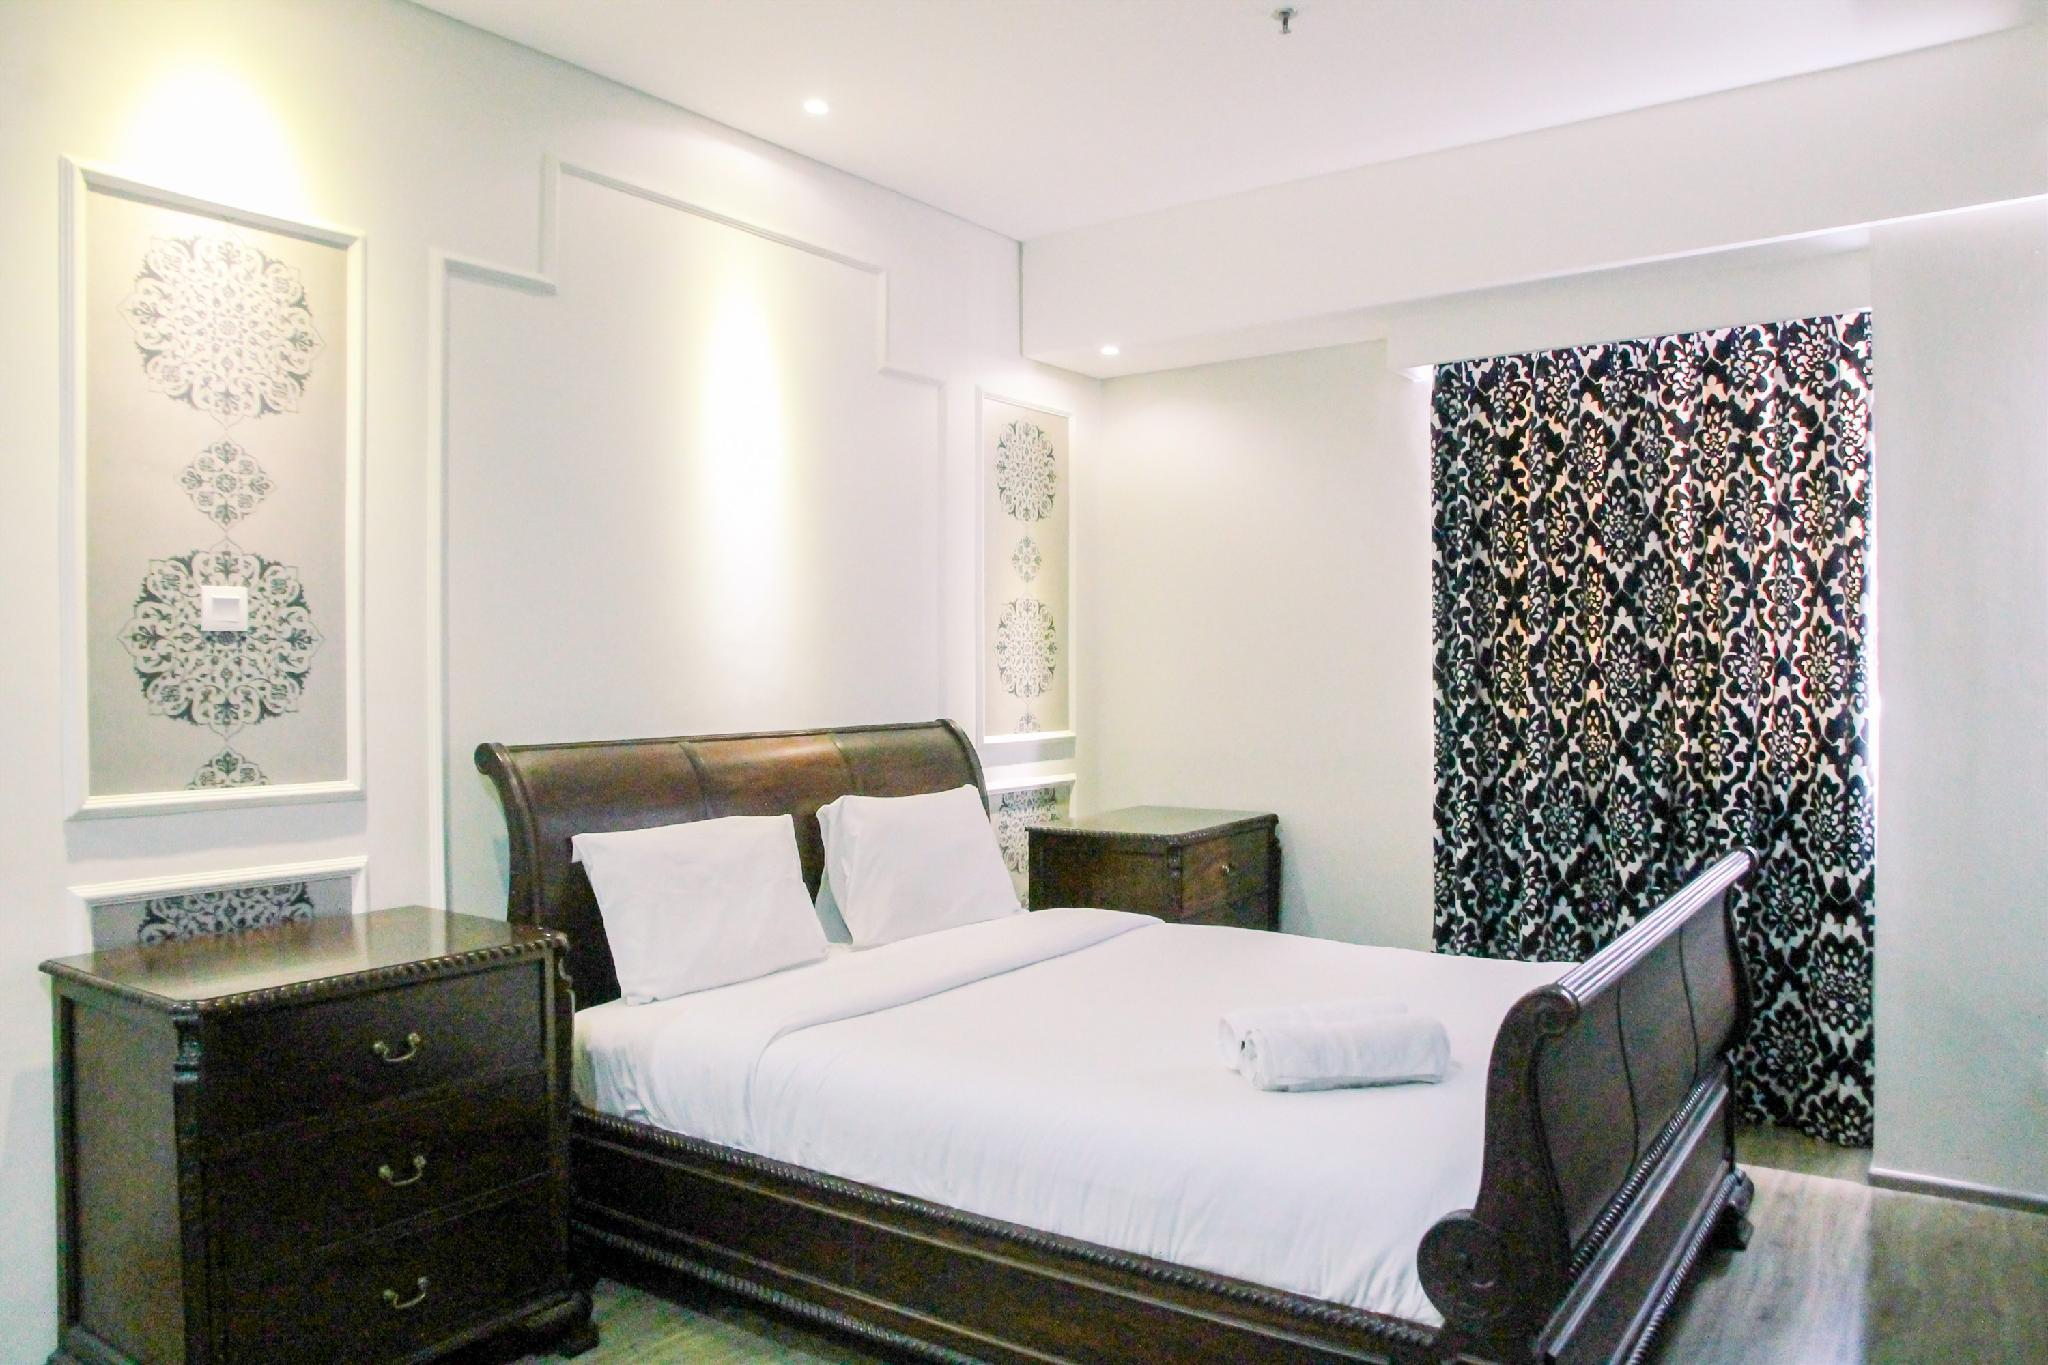 3BR Apartment At 1 Park Residences With Private Lift By Travelio